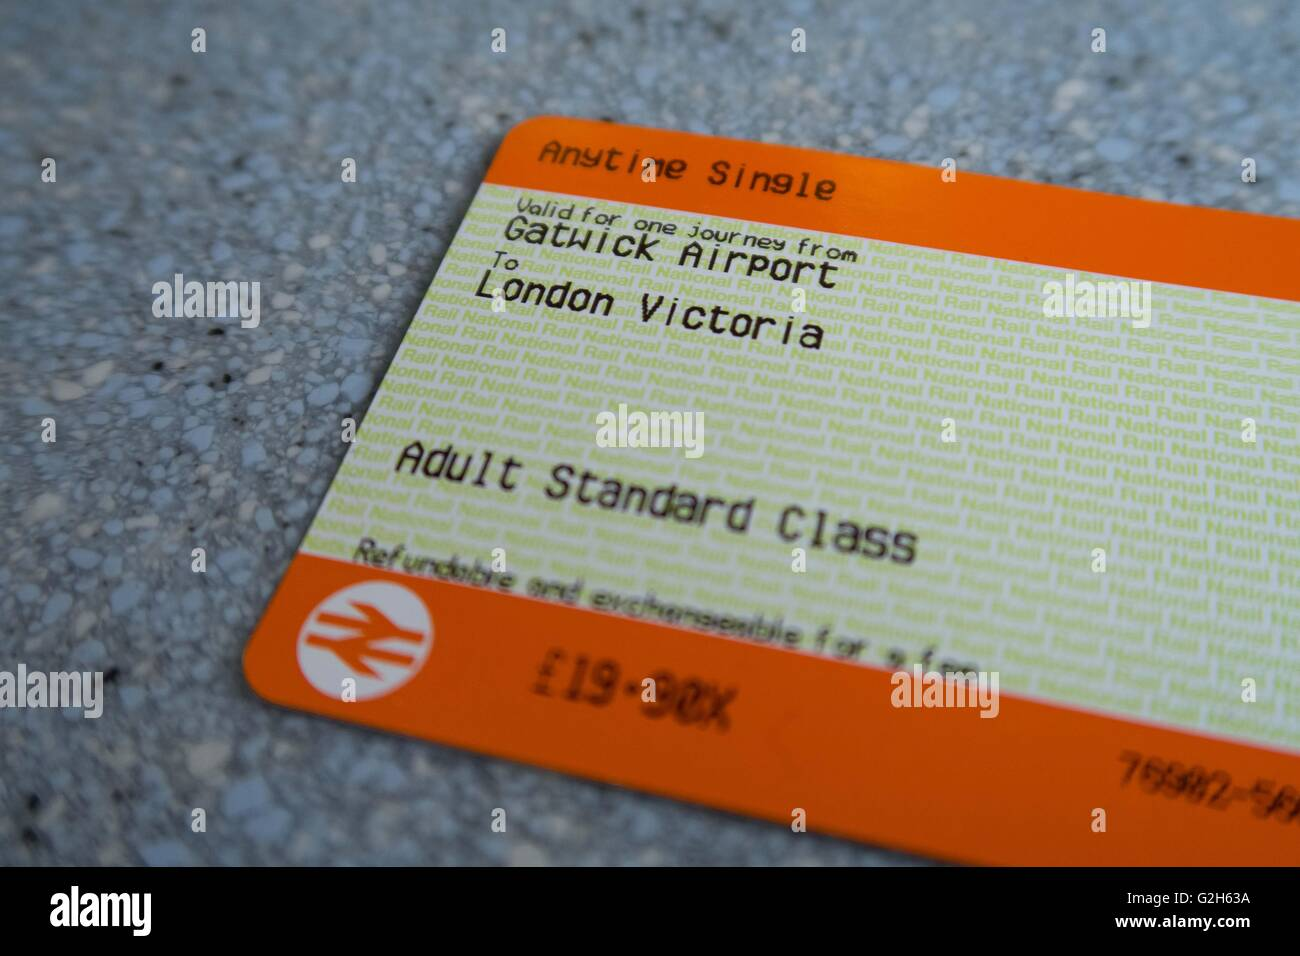 virgin train booking